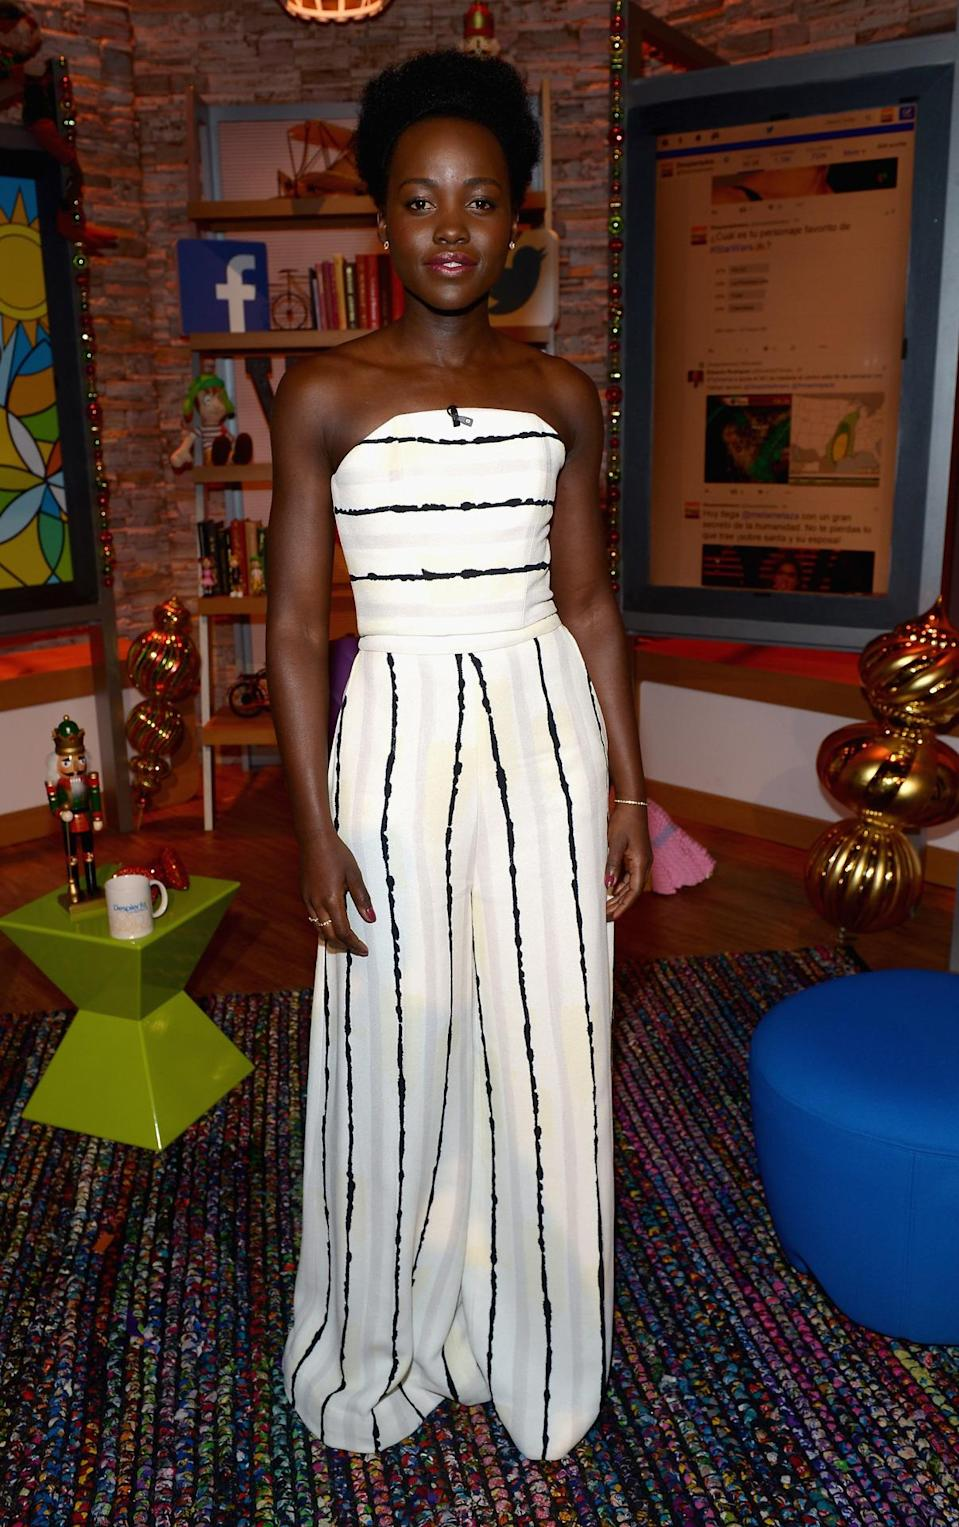 <p>Following the Mexico City premiere of <i>Star Wars: The Force Awakens</i>, Lupita Nyong'o made an appearance on <i>Despierta America</i>, wearing a a striped white jumpsuit.</p><p><i>Photo: Getty Images</i></p>